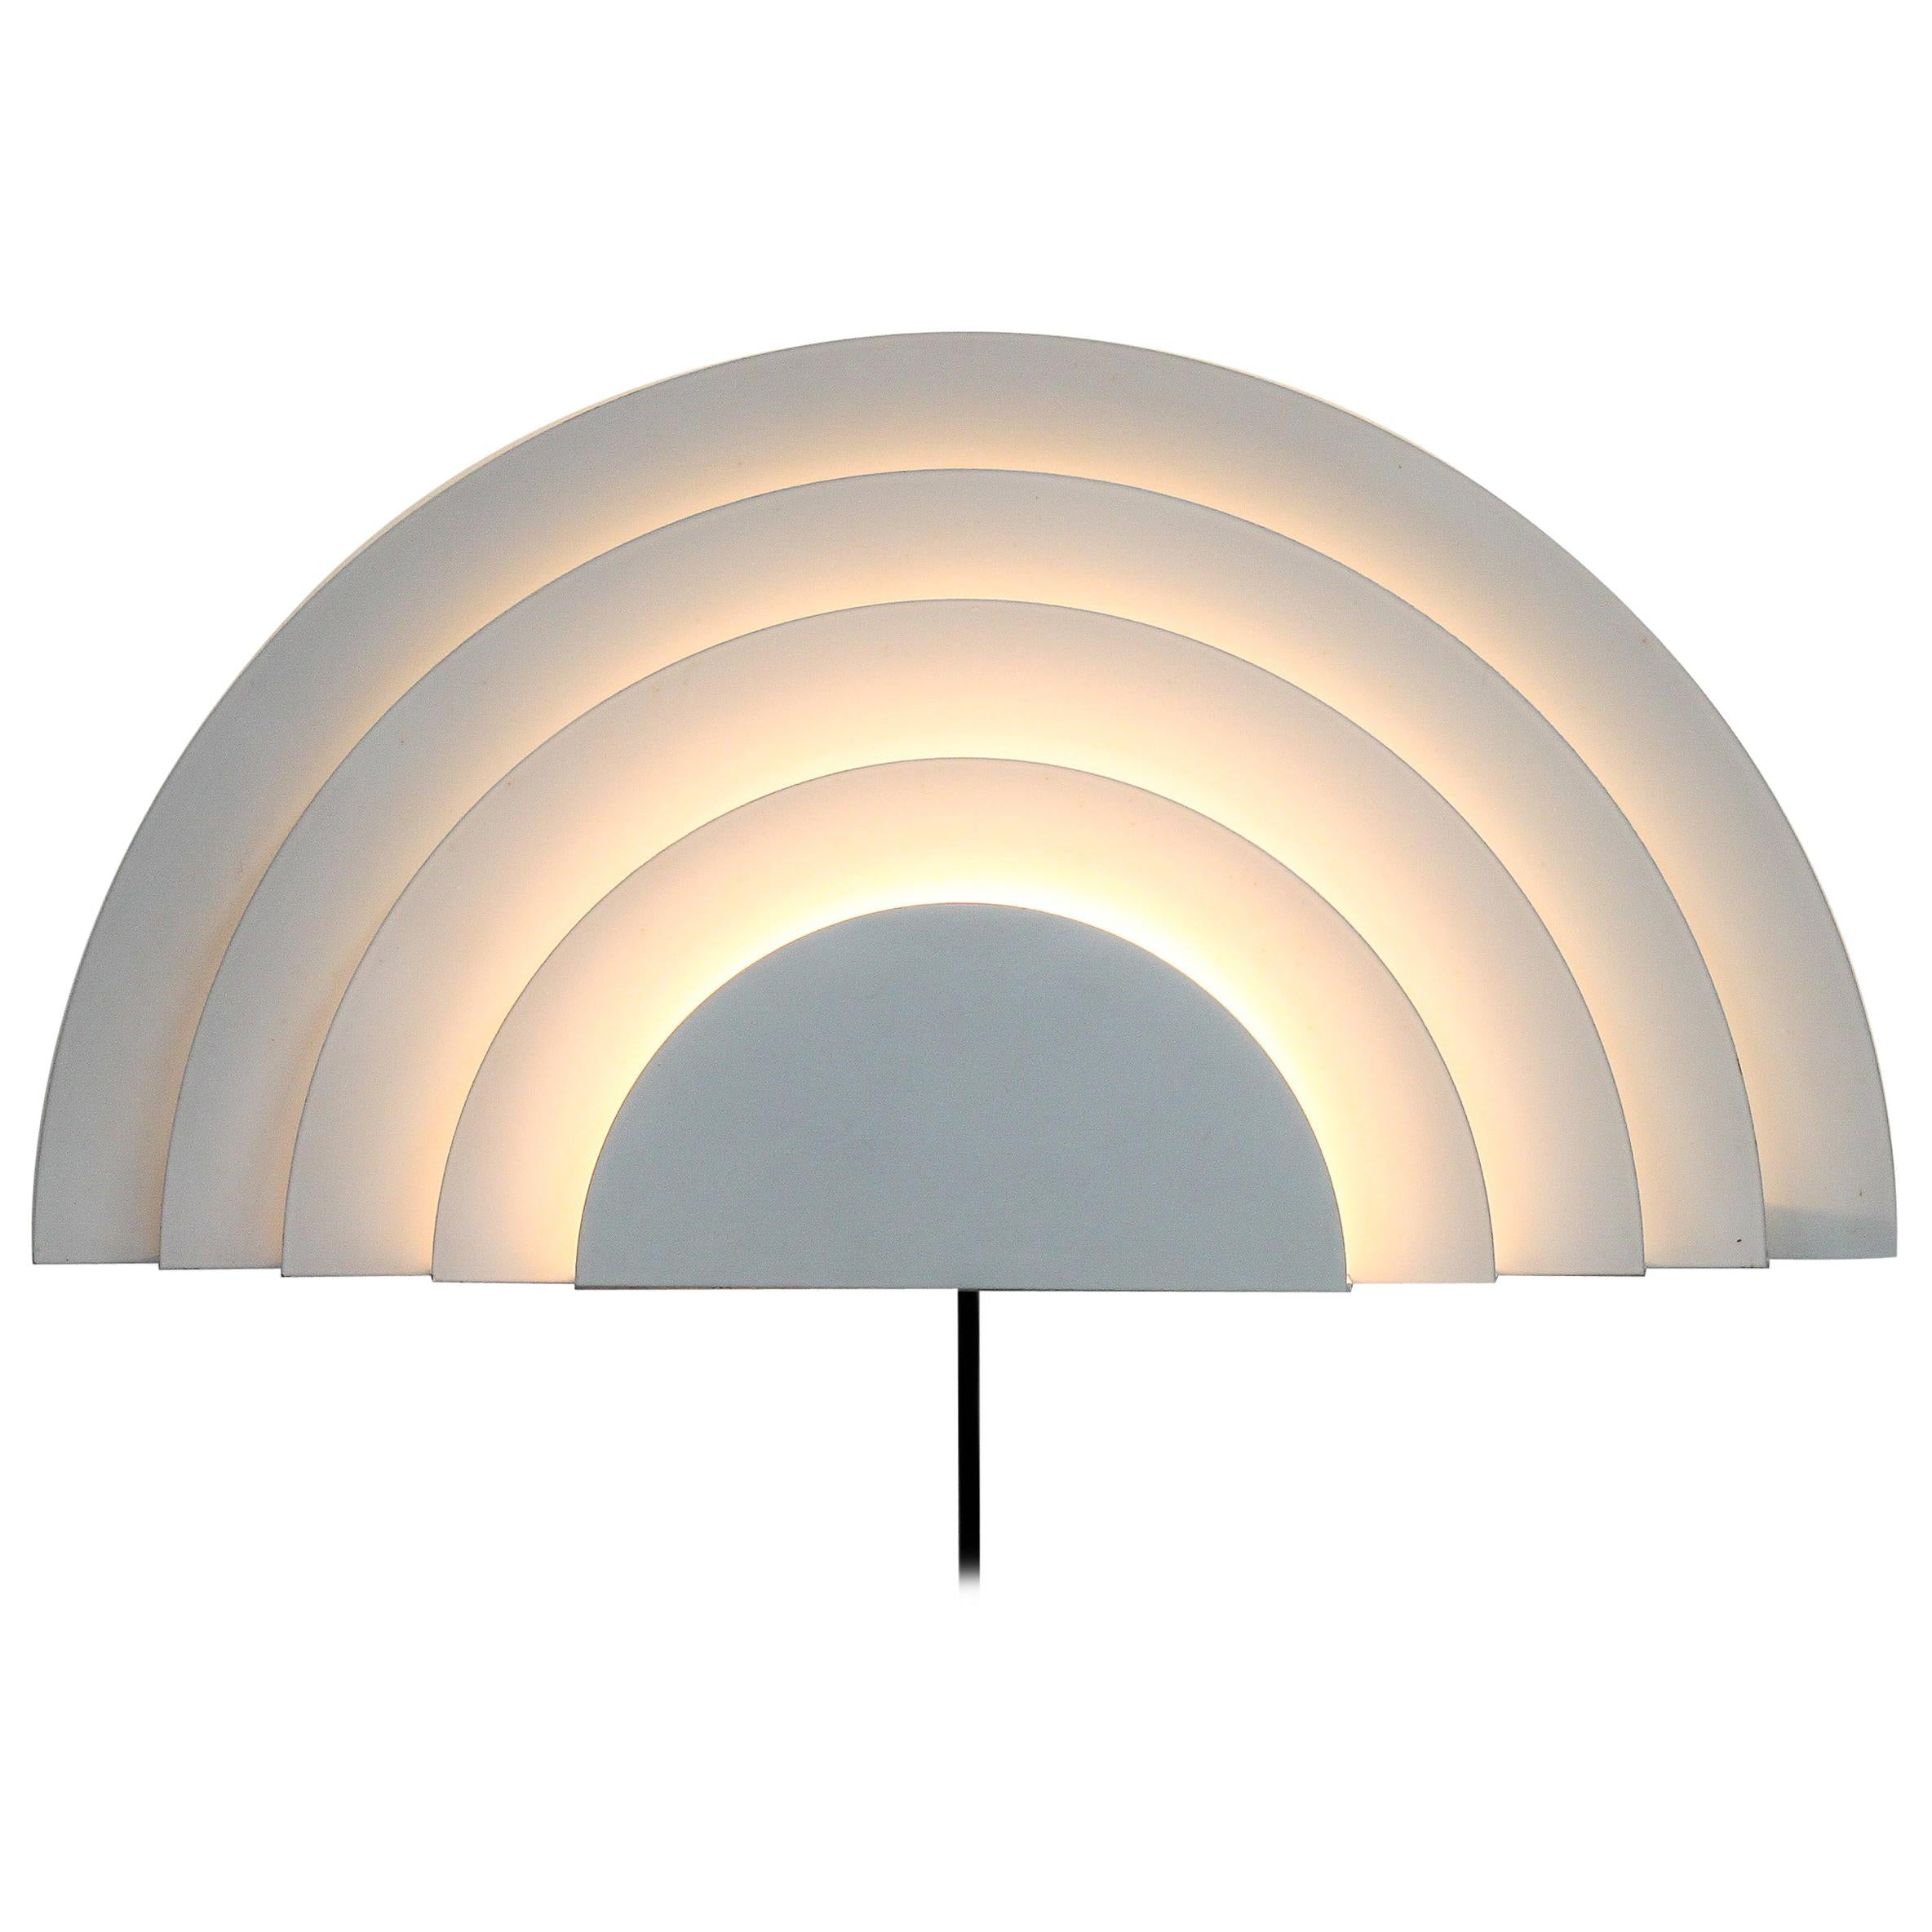 Meander Wall Sconce by Cesare Casati and Emanuele Ponzio for RAAK, Netherlands